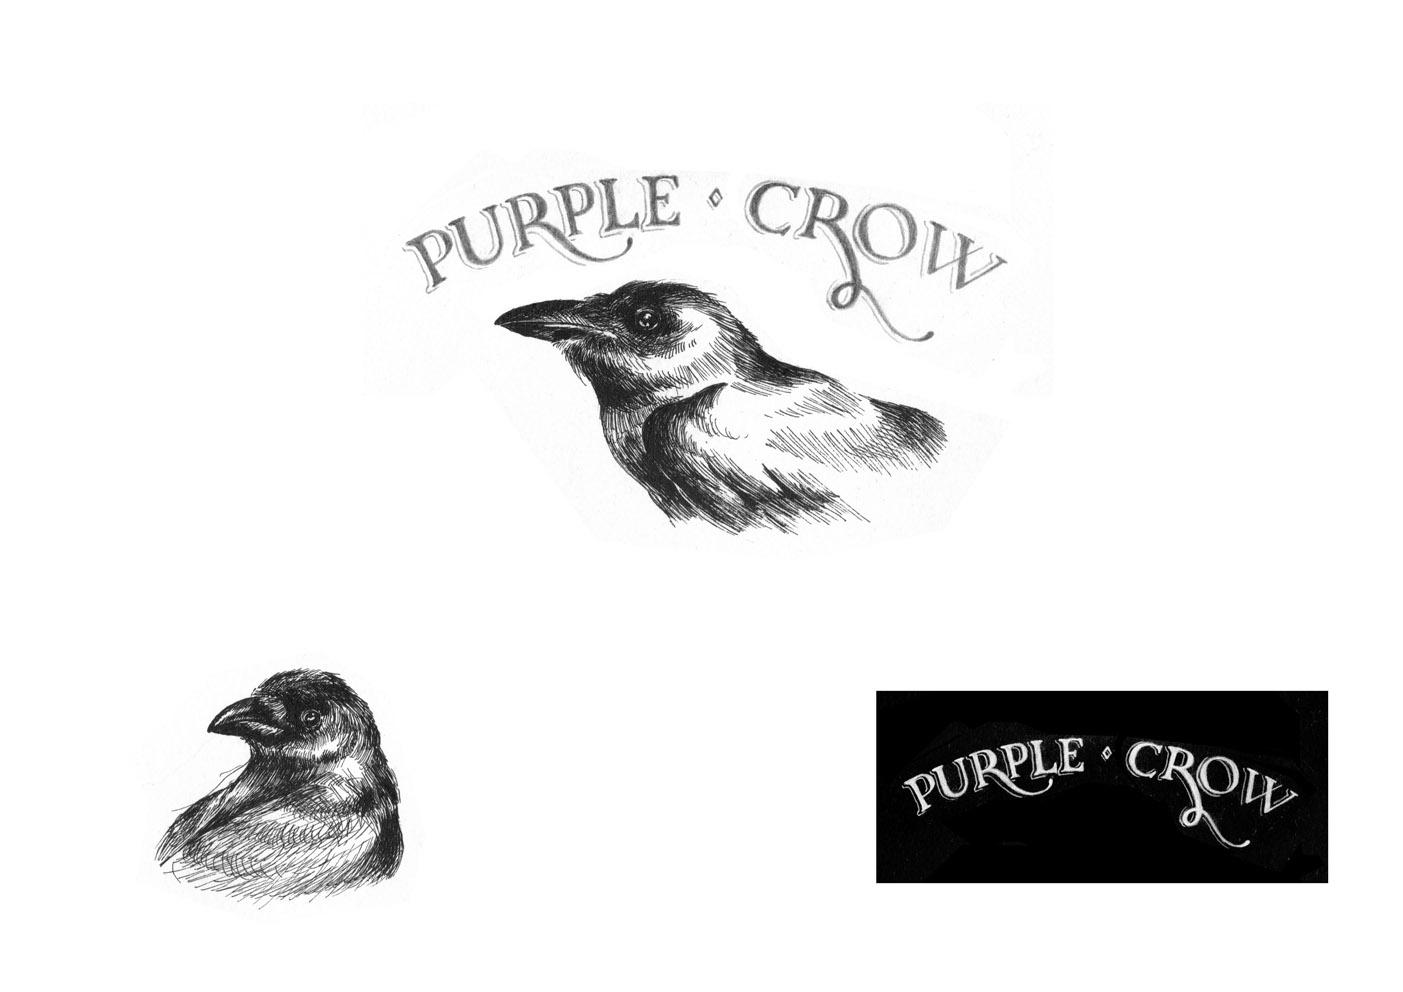 Purple Crow Permaculture - image 4 - student project